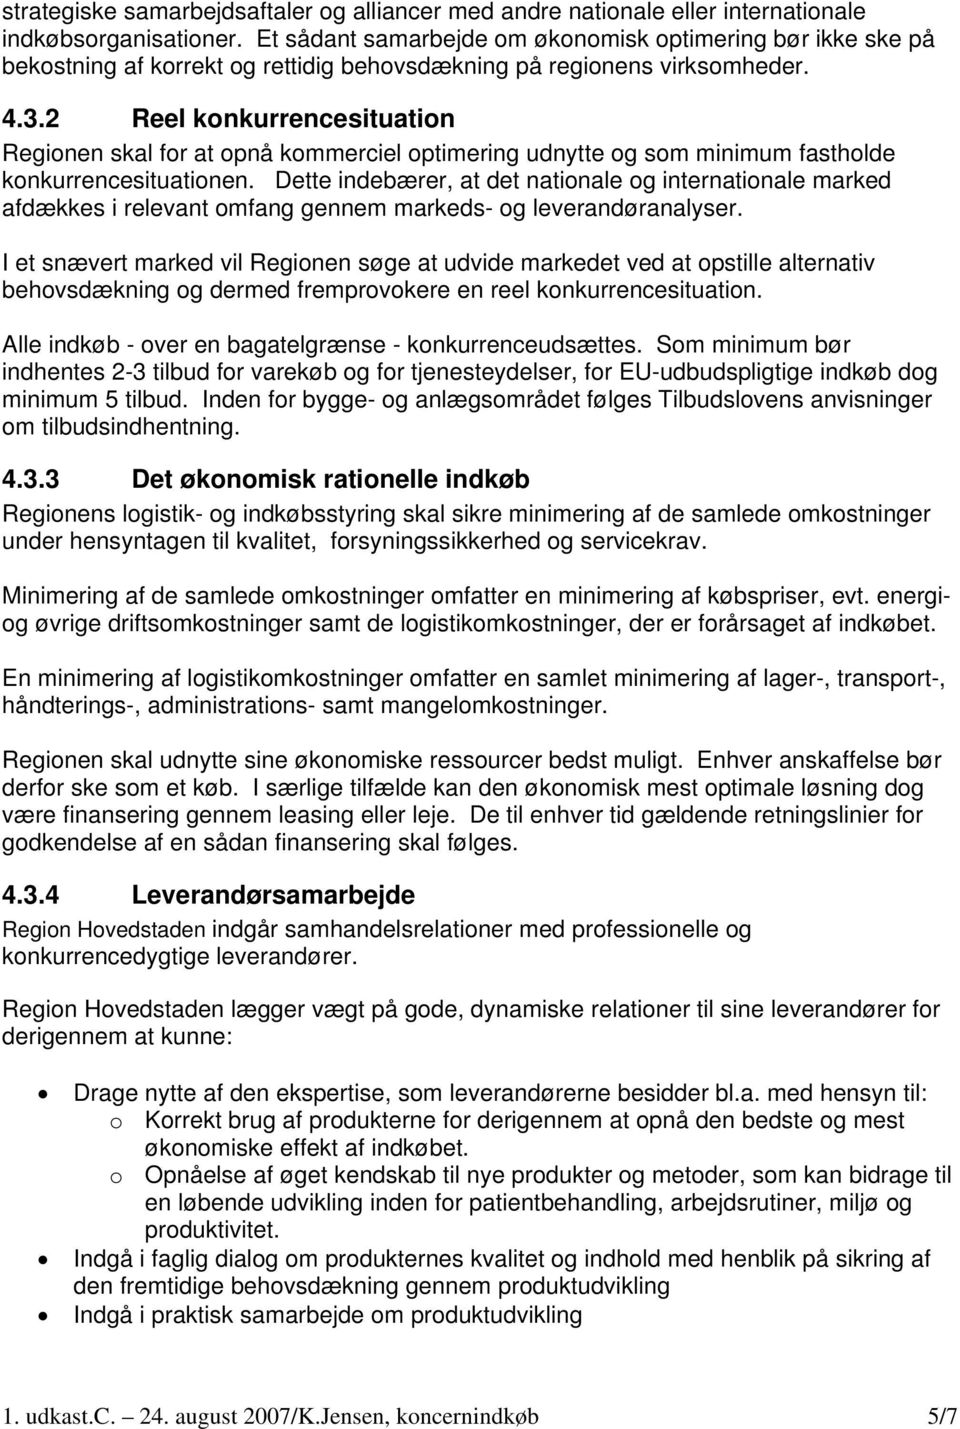 2 Reel konkurrencesituation Regionen skal for at opnå kommerciel optimering udnytte og som minimum fastholde konkurrencesituationen.